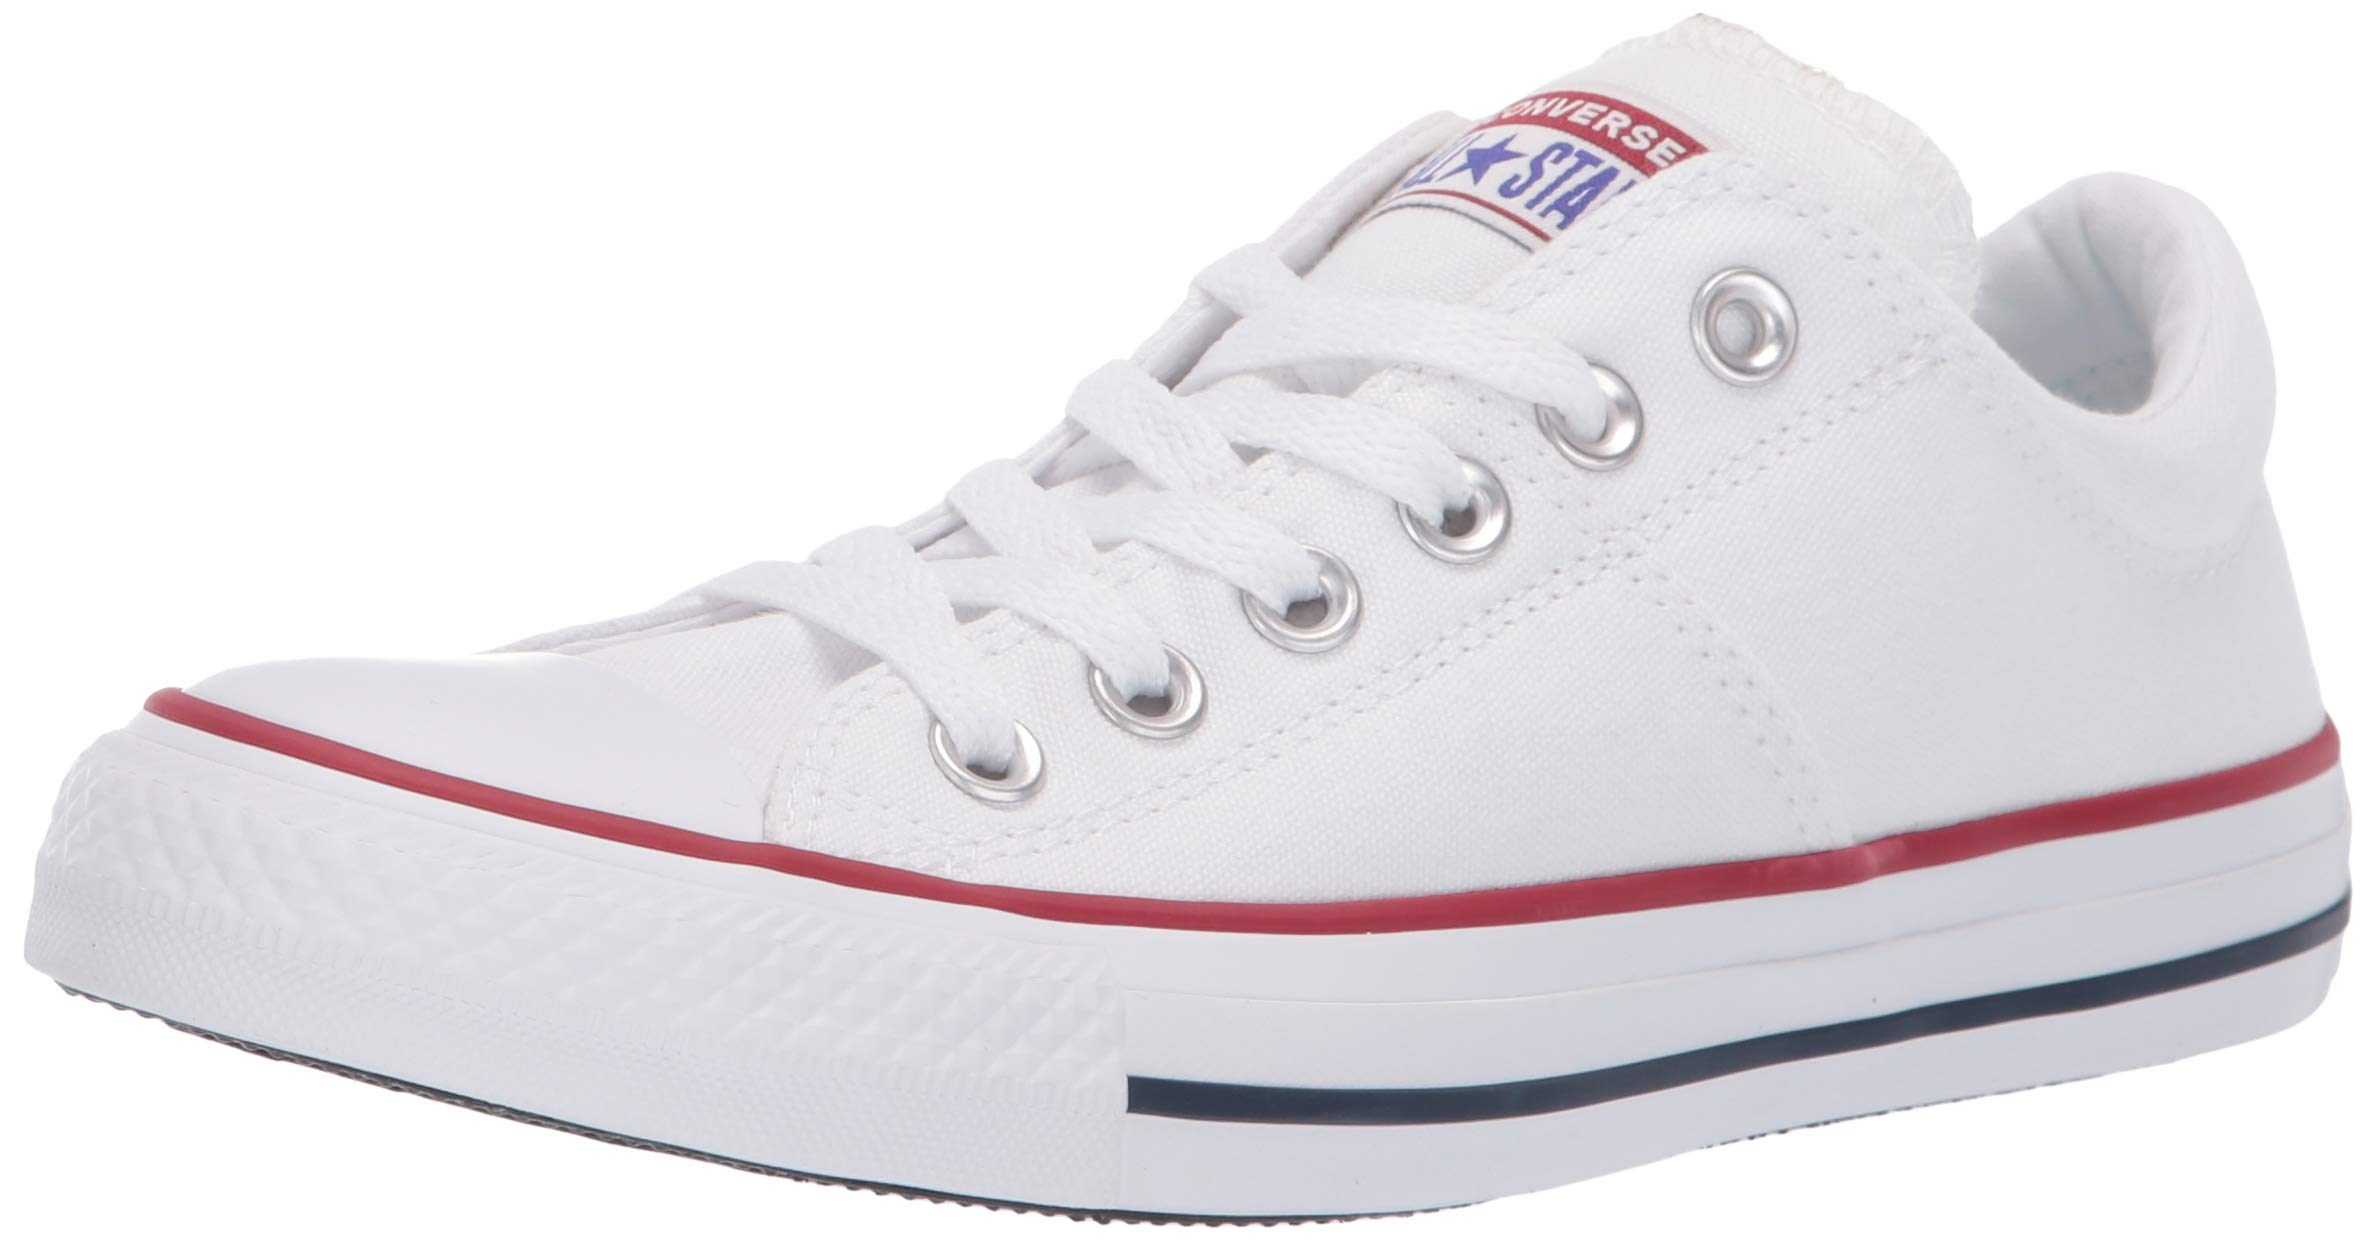 Converse Women's Chuck Taylor All Star Madison Low Top Sneaker White, 8 M US